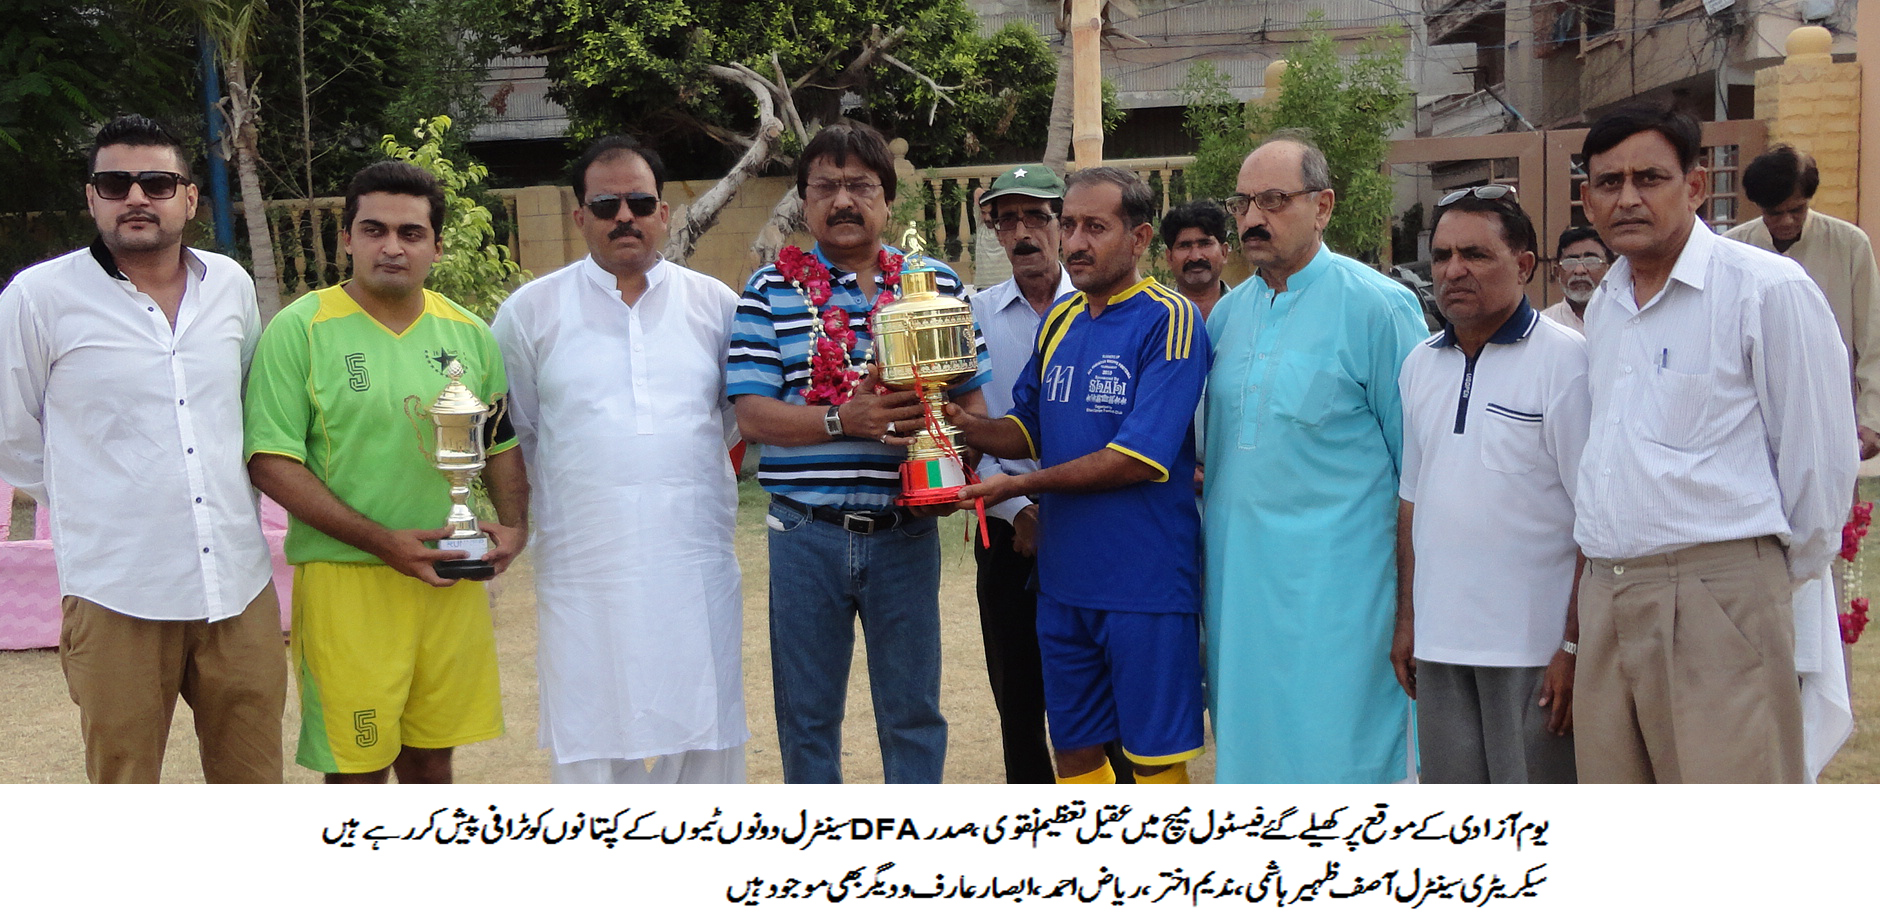 Karachi: Independence Day Festival matches in District Central